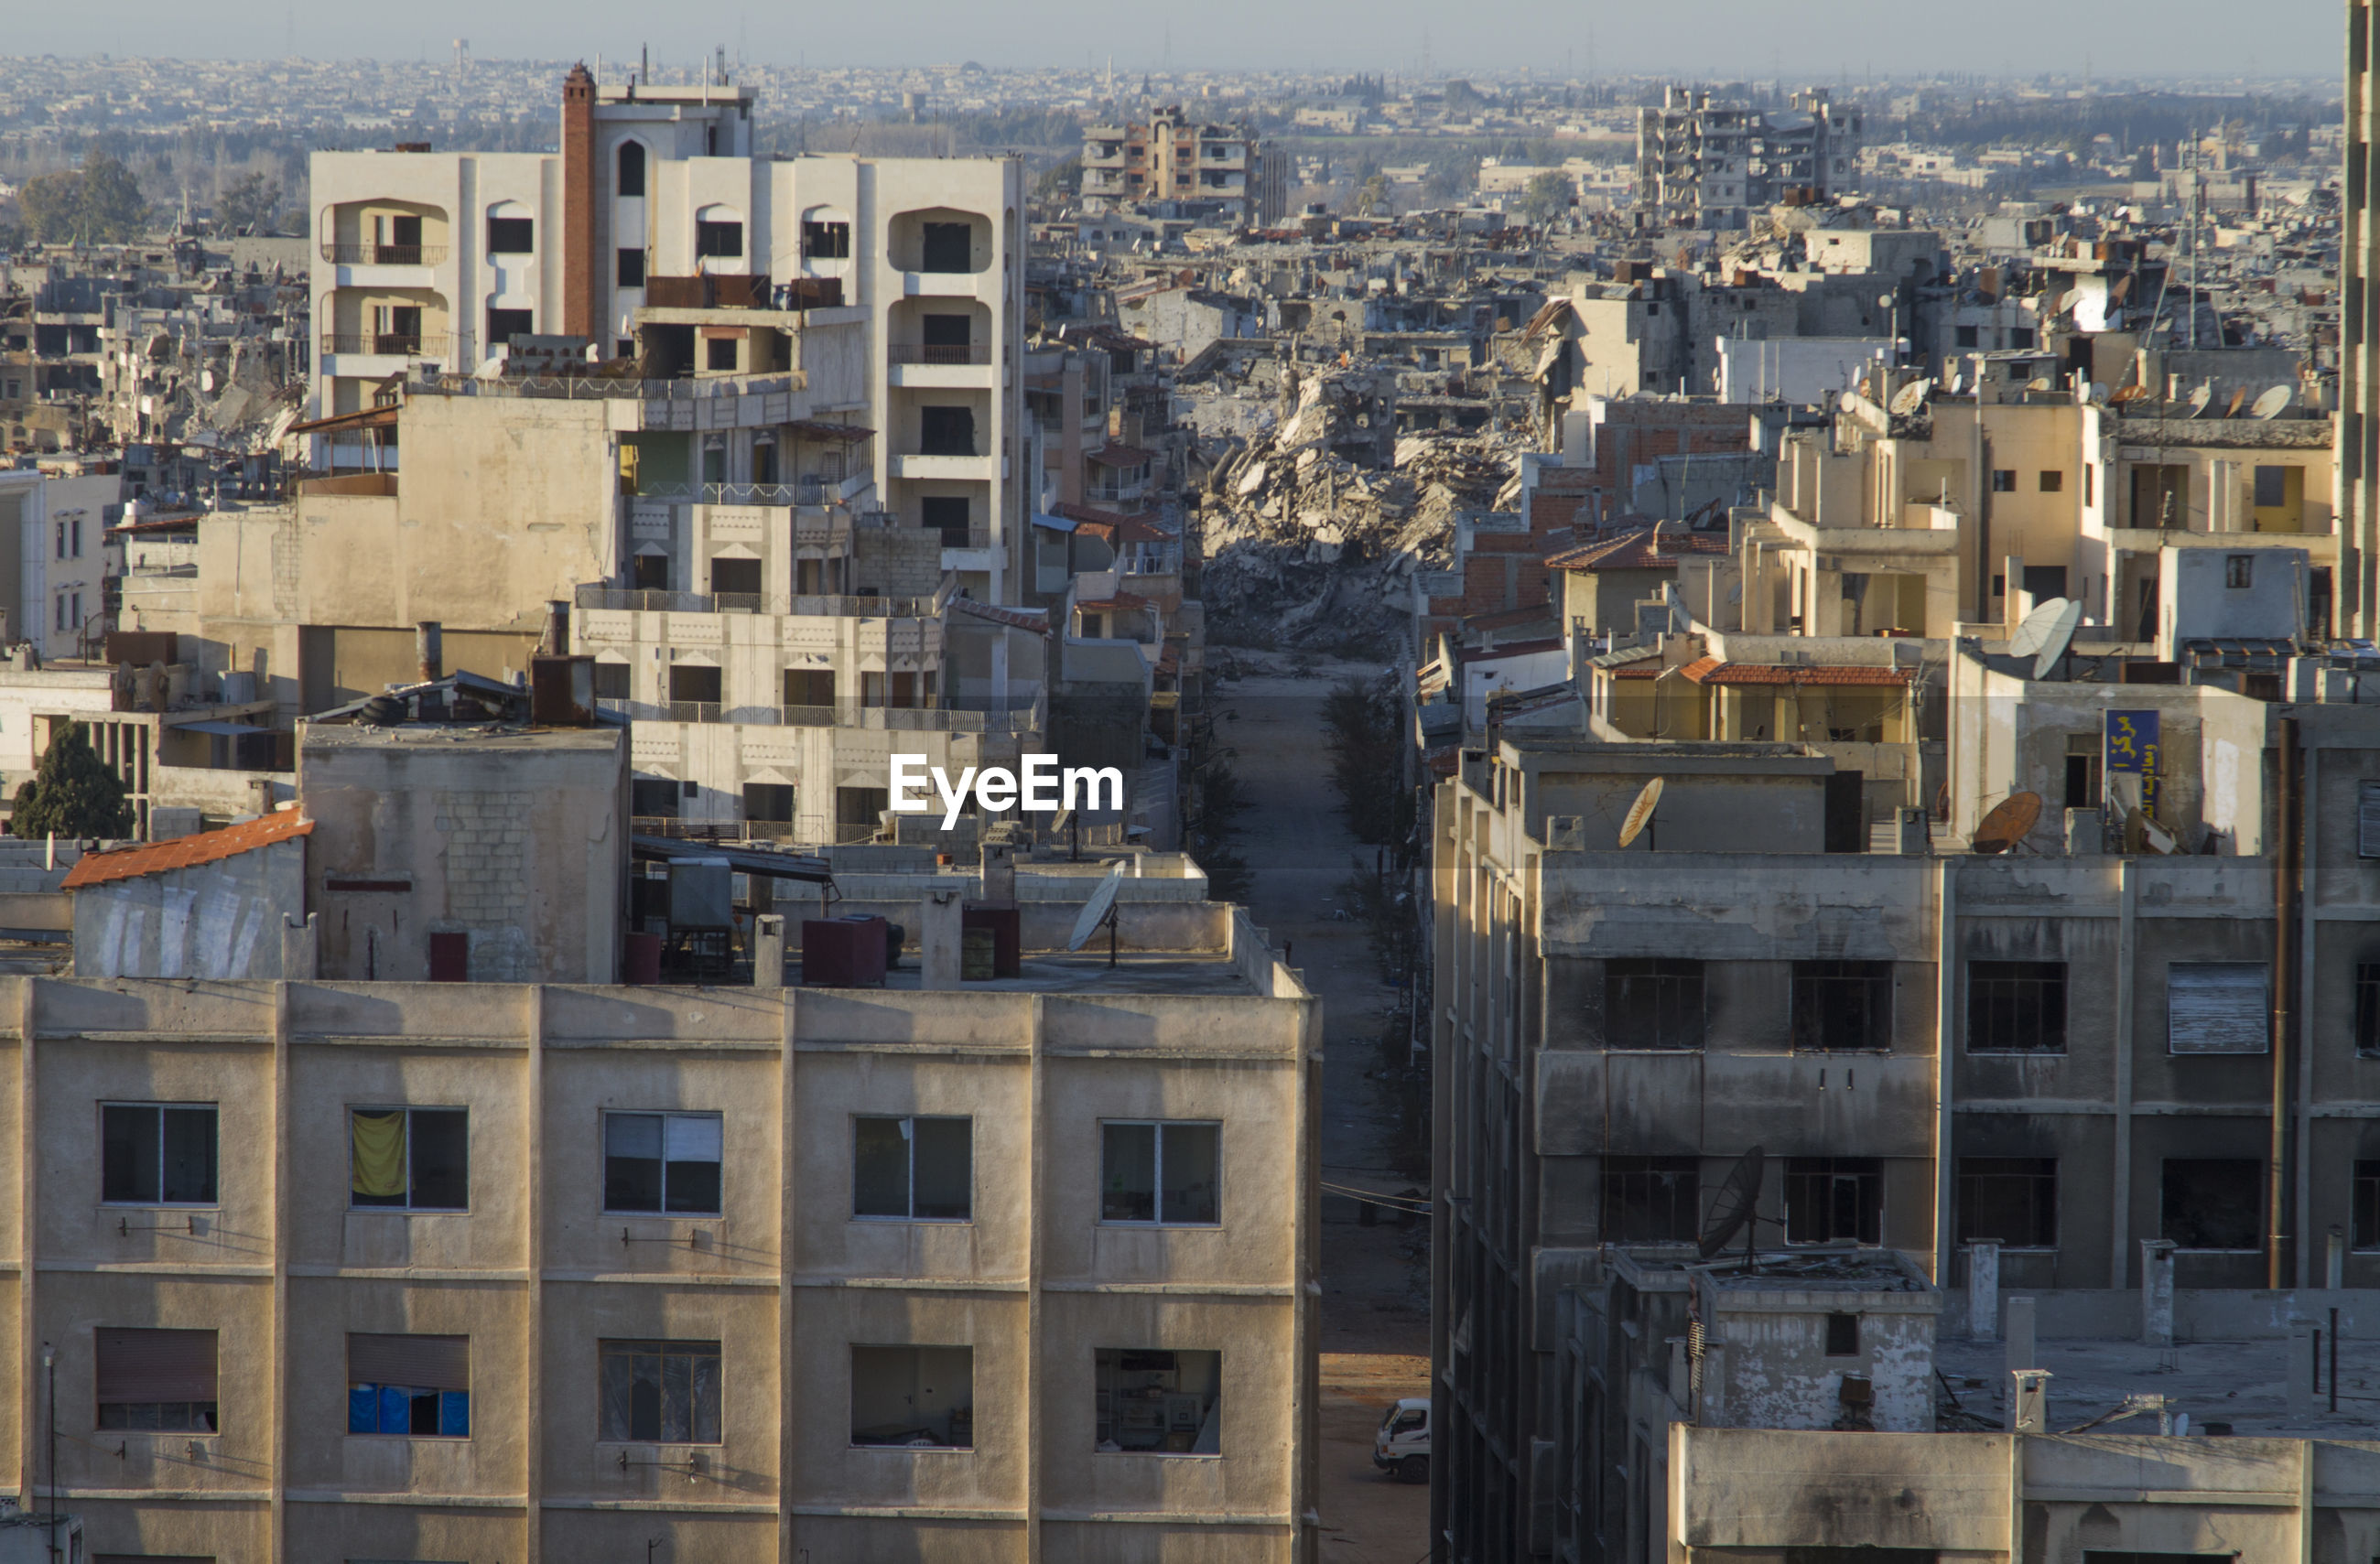 Center of homs city, syria in ruins